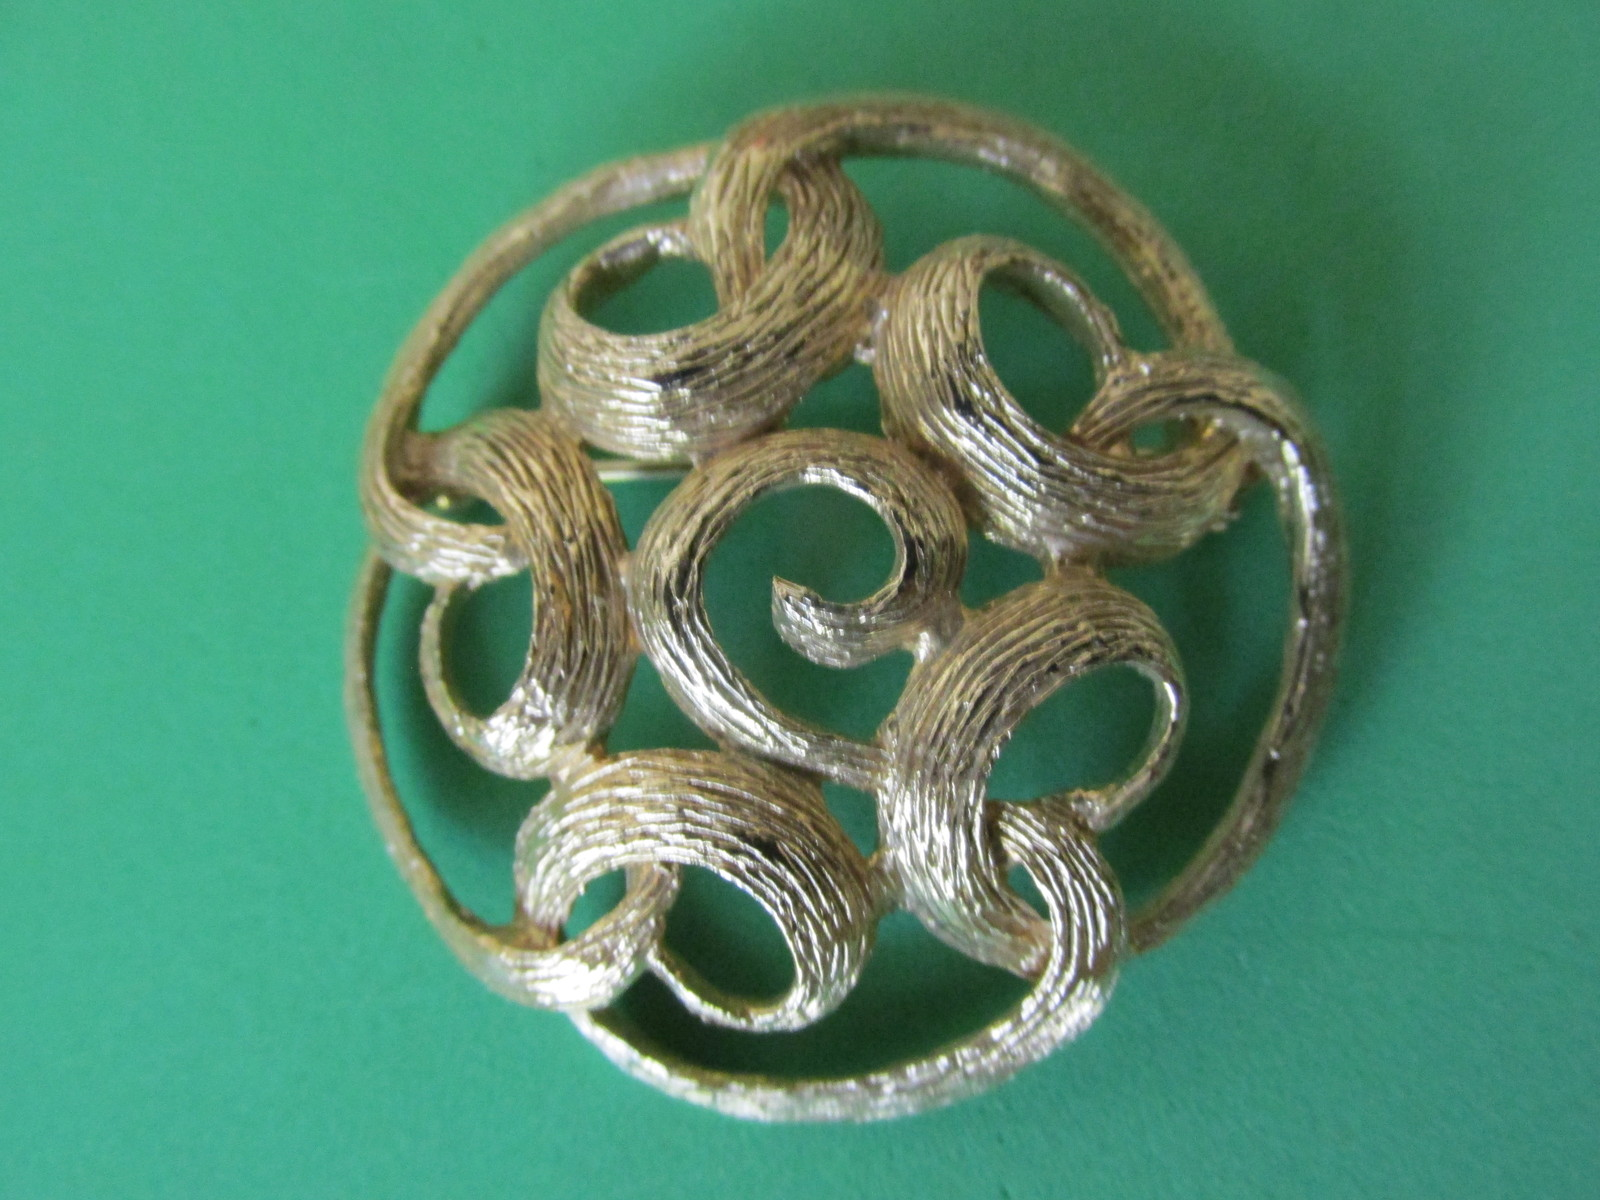 Retro Vintage Lot of Sarah Coventry Gold Toned Pins / Brooches - 1960s / 1970s